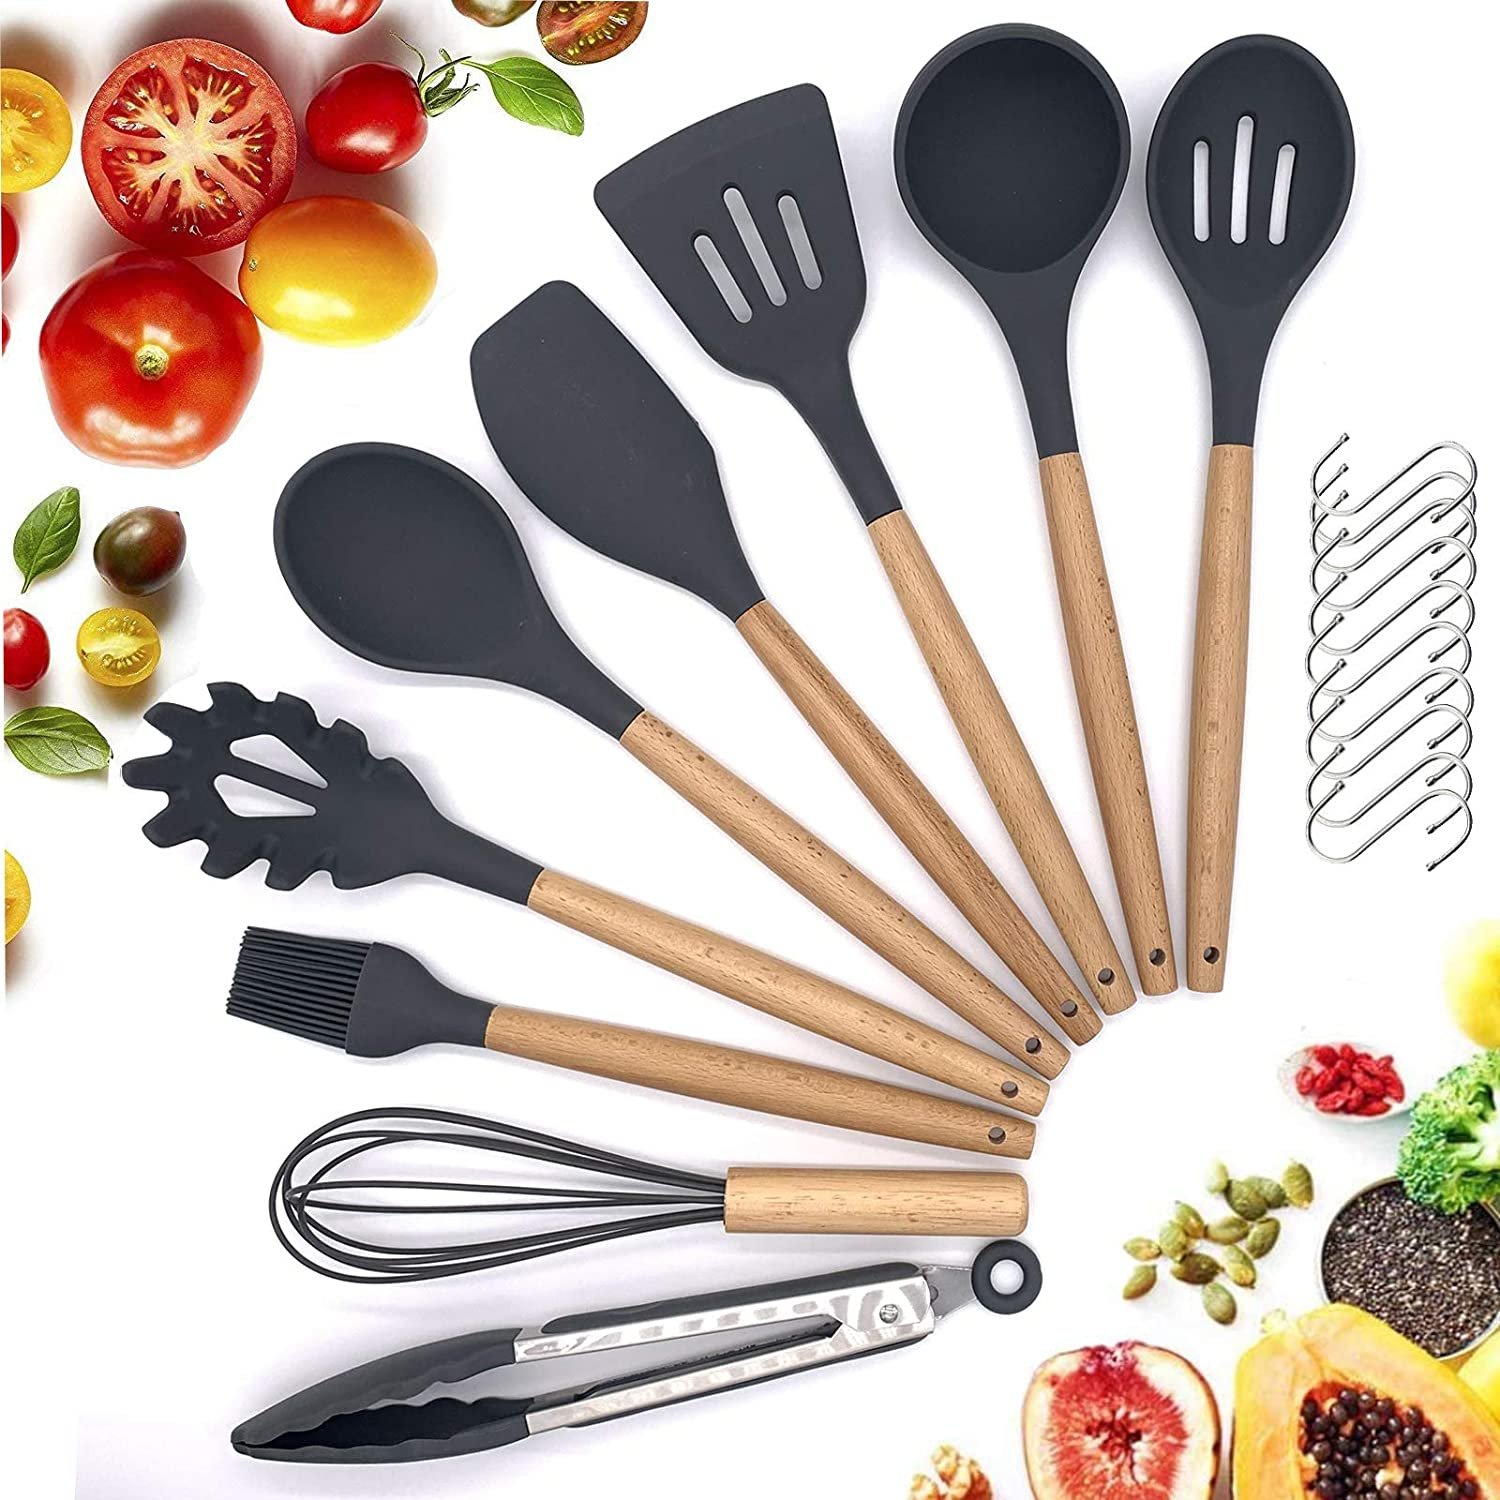 Silicone Cooking Utensils Set With Wood Handle,Non-stick Safe Food Grade Silicone Kitchen Utensils For Cooking,Heat Resistant & Flexible Silicone Kitchen Utensils,12pcs Spatula Set 10 S Hooks